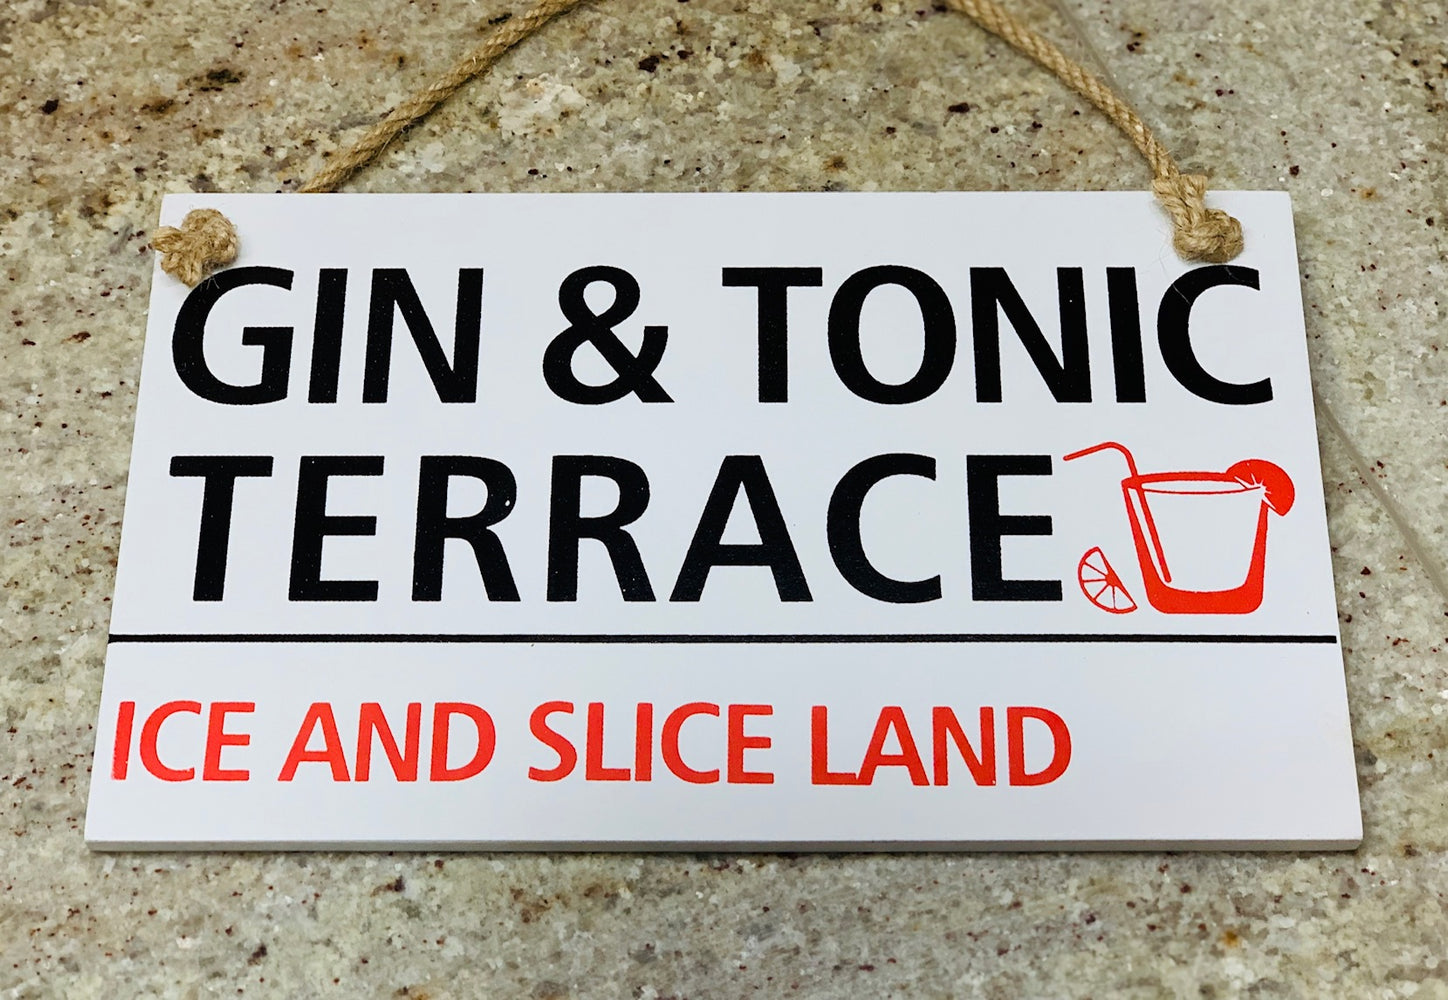 Gin Plaque - Gin & Tonic Terrace